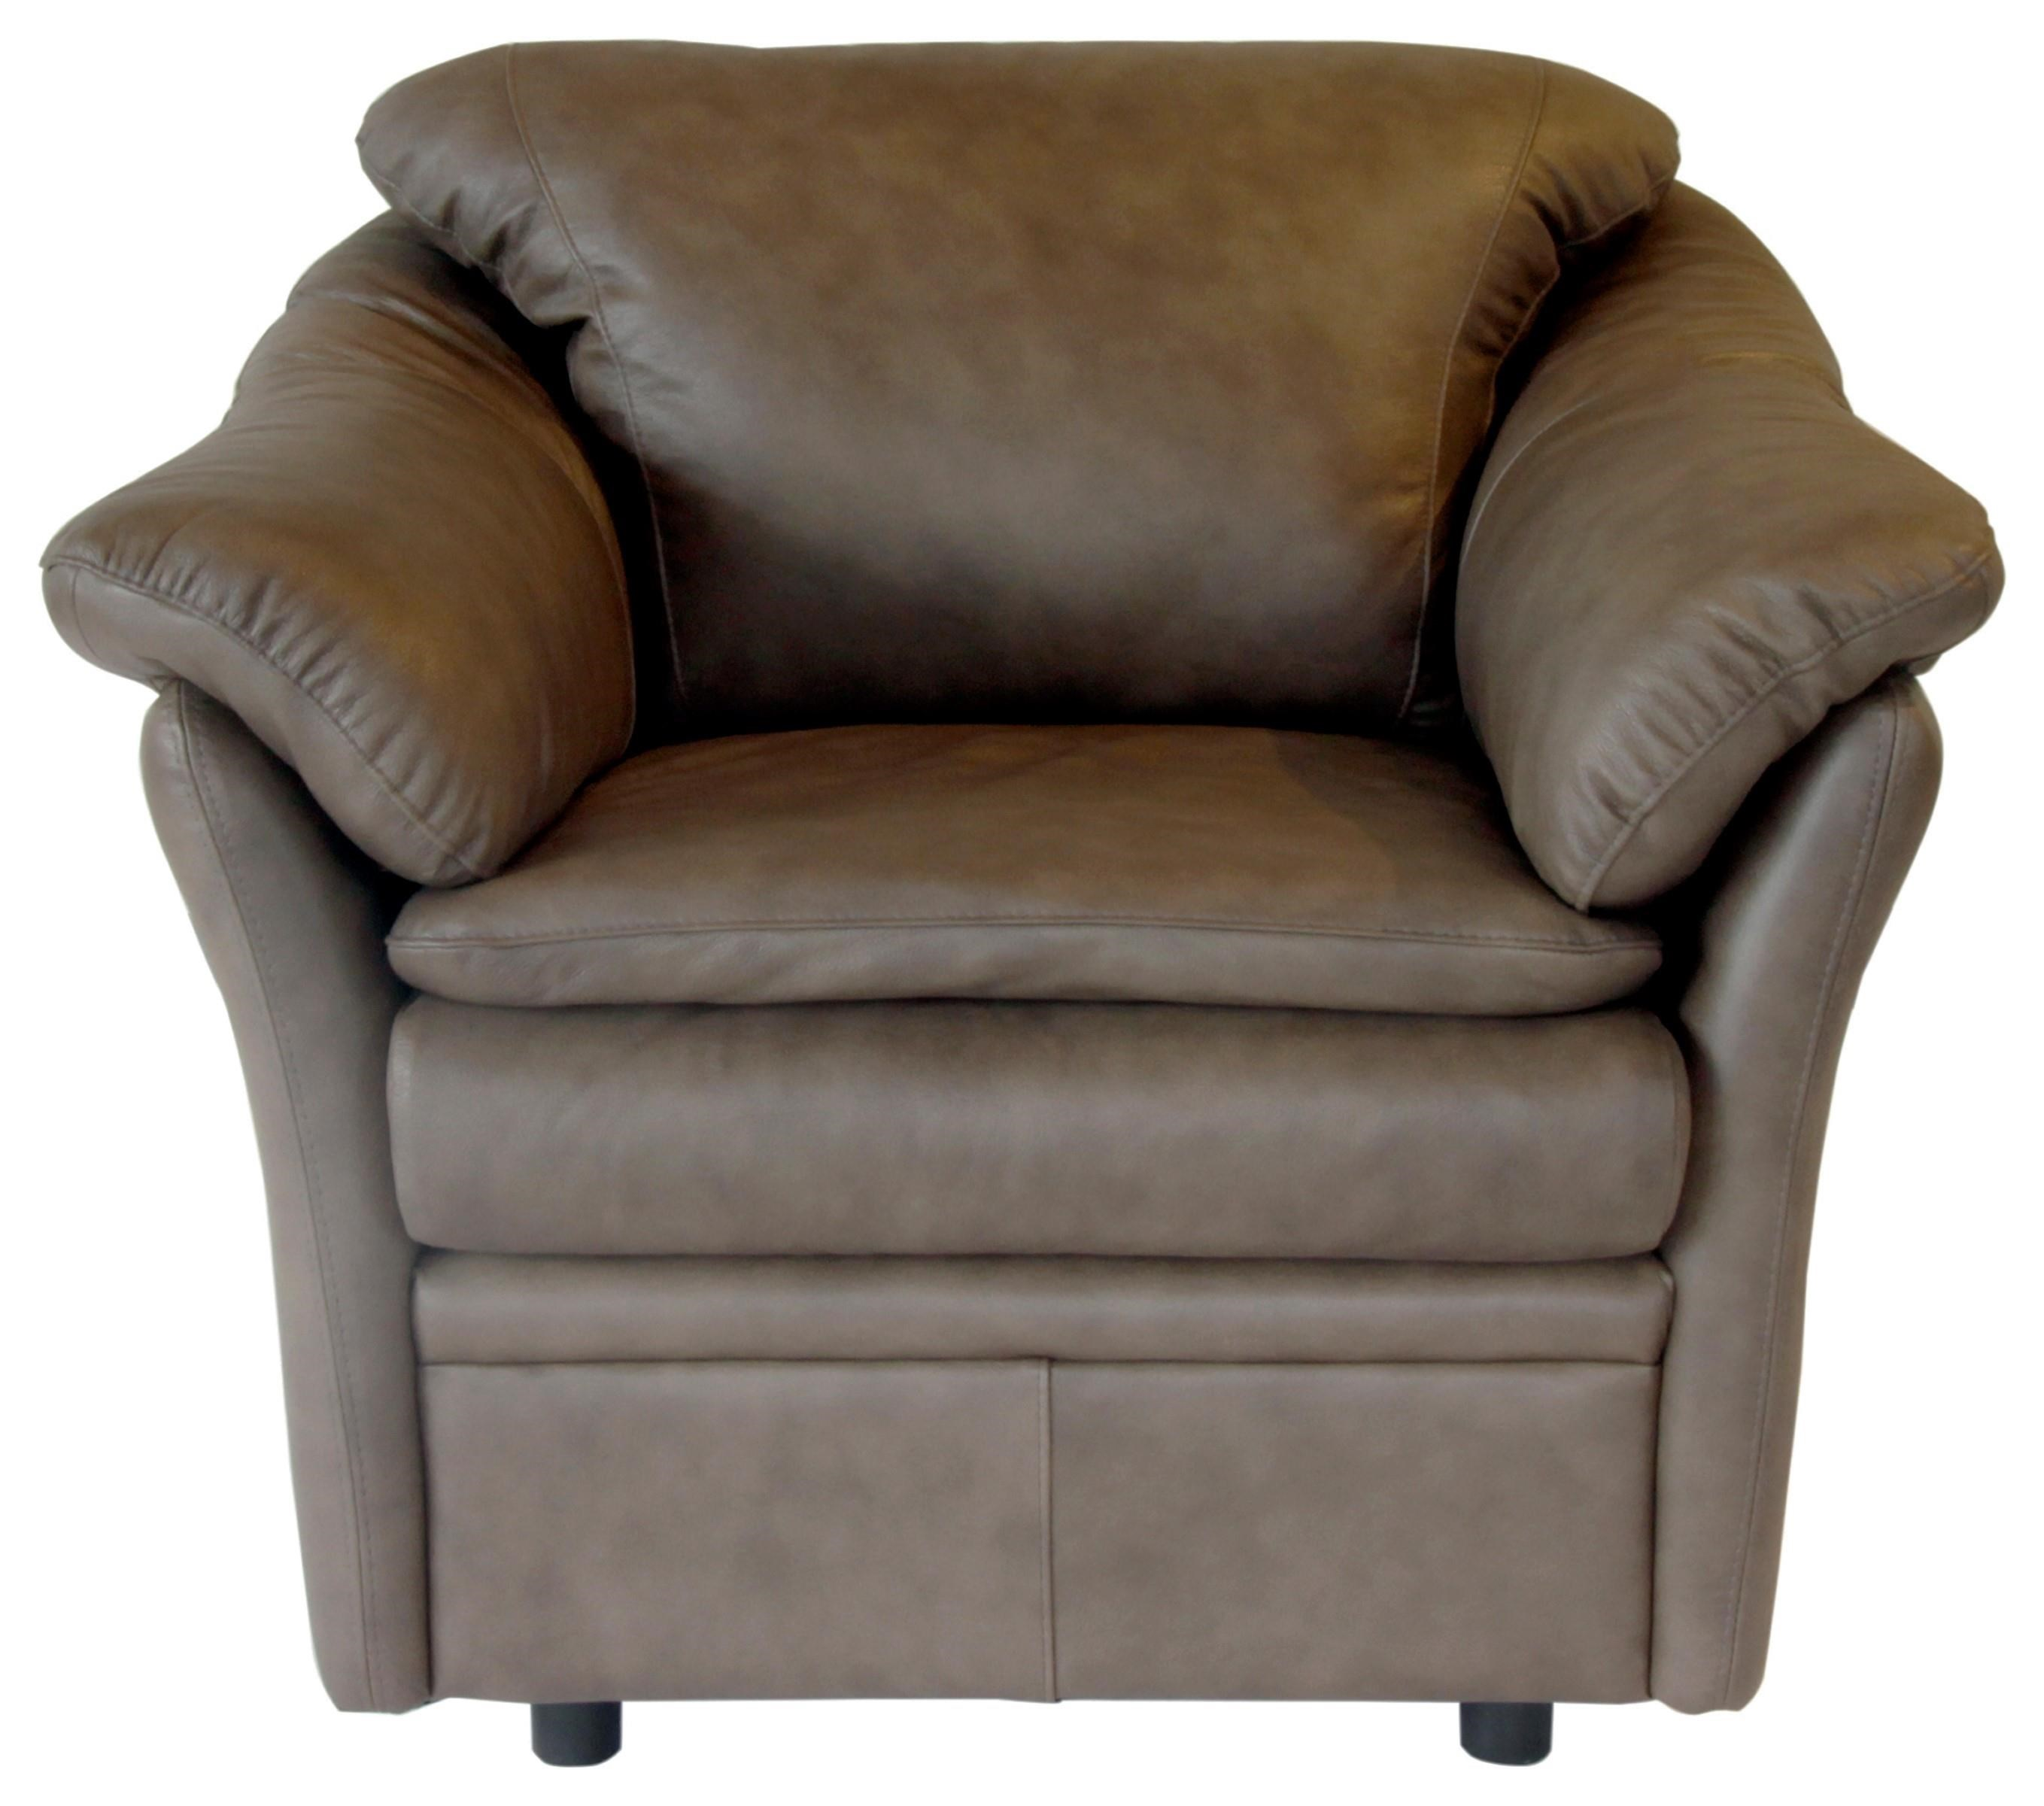 Uptown Chair by Omnia Leather at HomeWorld Furniture